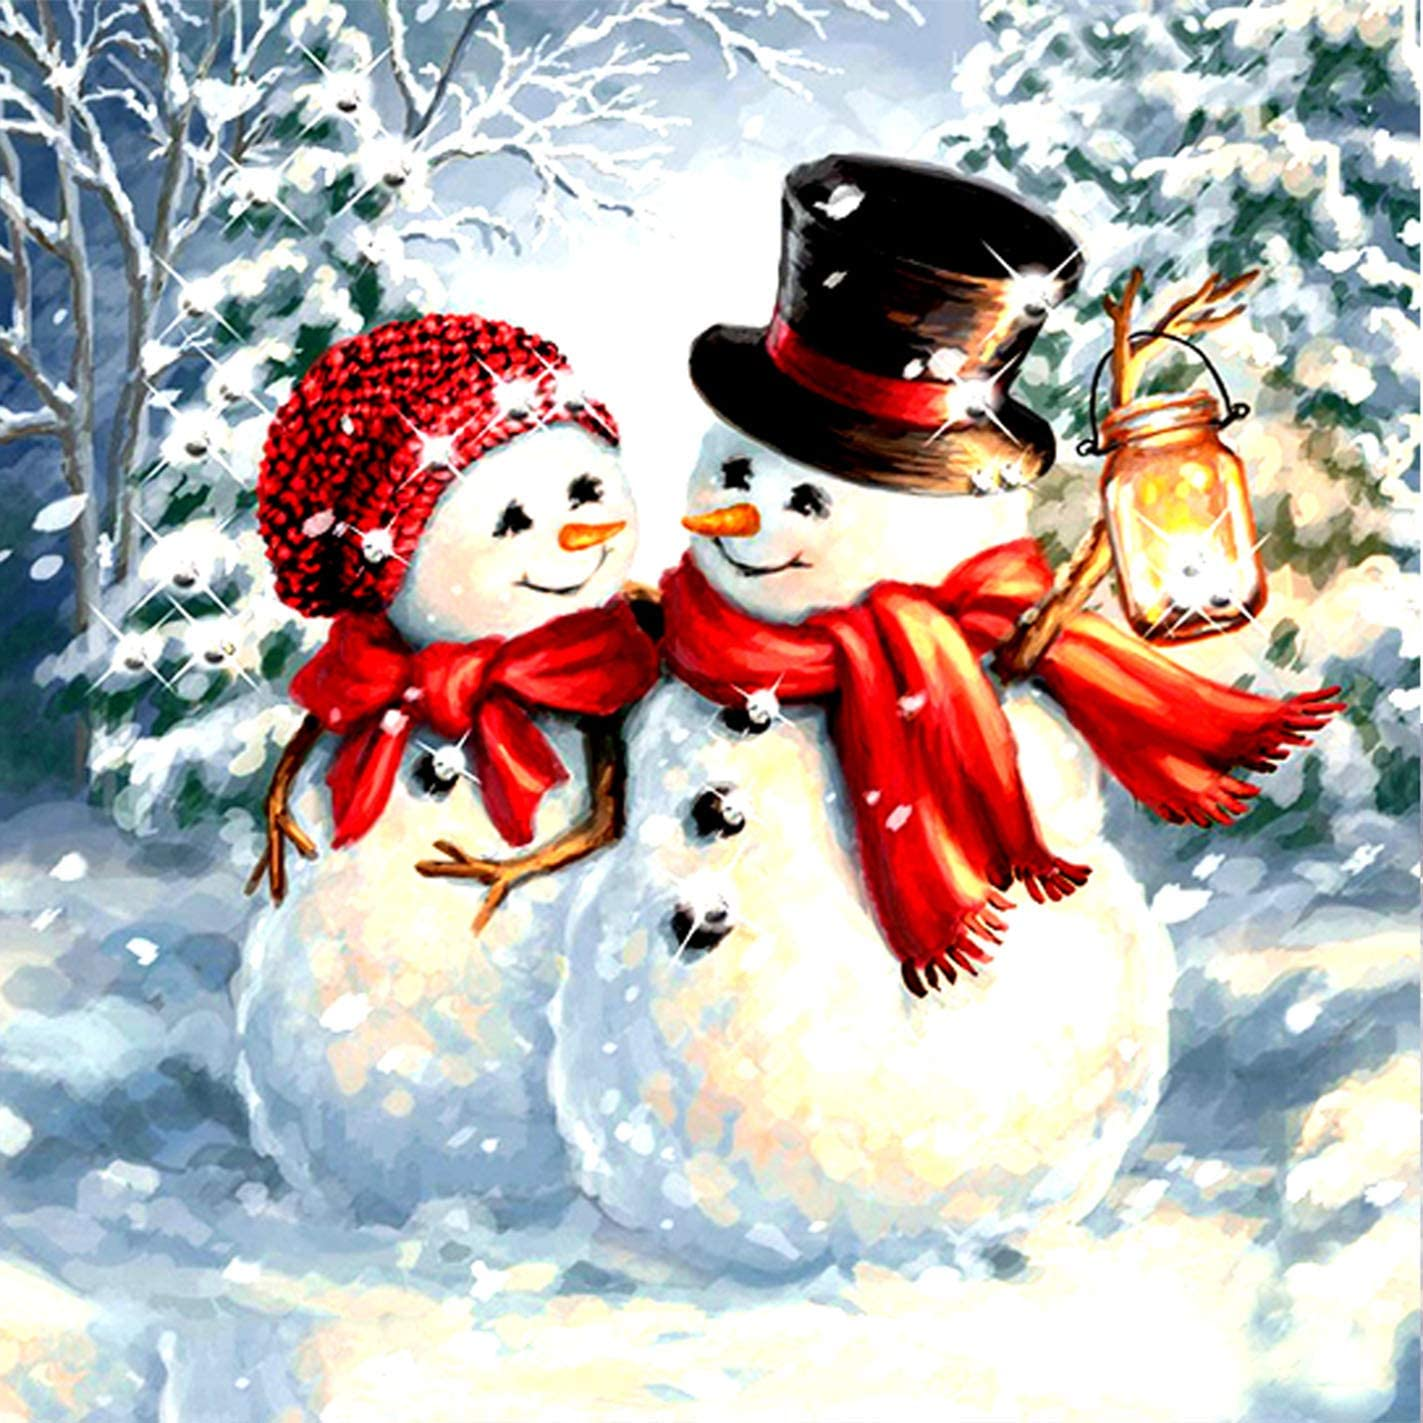 Bimkole 5D Diamond Painting Kits Snowman Couple, Full Drill Art Winter DIY Rhinestone Embroidery Set Paint with by Number Kits Cross Stitch Home Wall Craft Decoration (12x12inch)